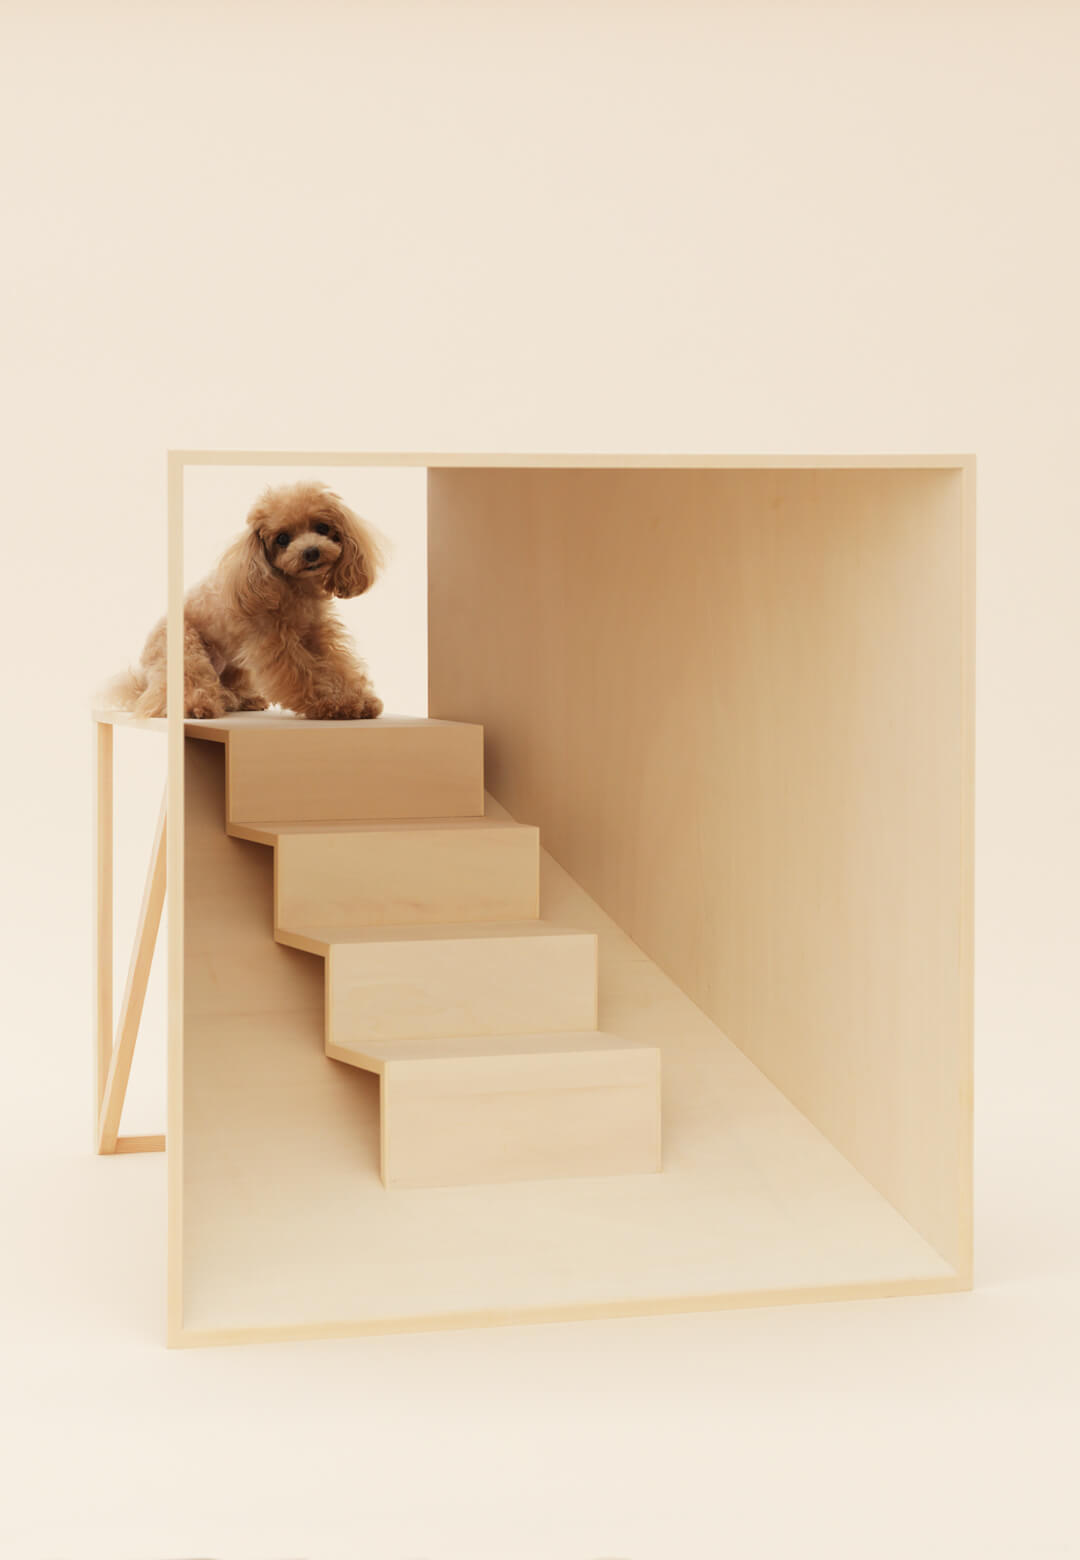 D-tunnel by Kenya Hara for Teacup Poodle | Architecture for Dogs | Hara Kenya | STIRworld